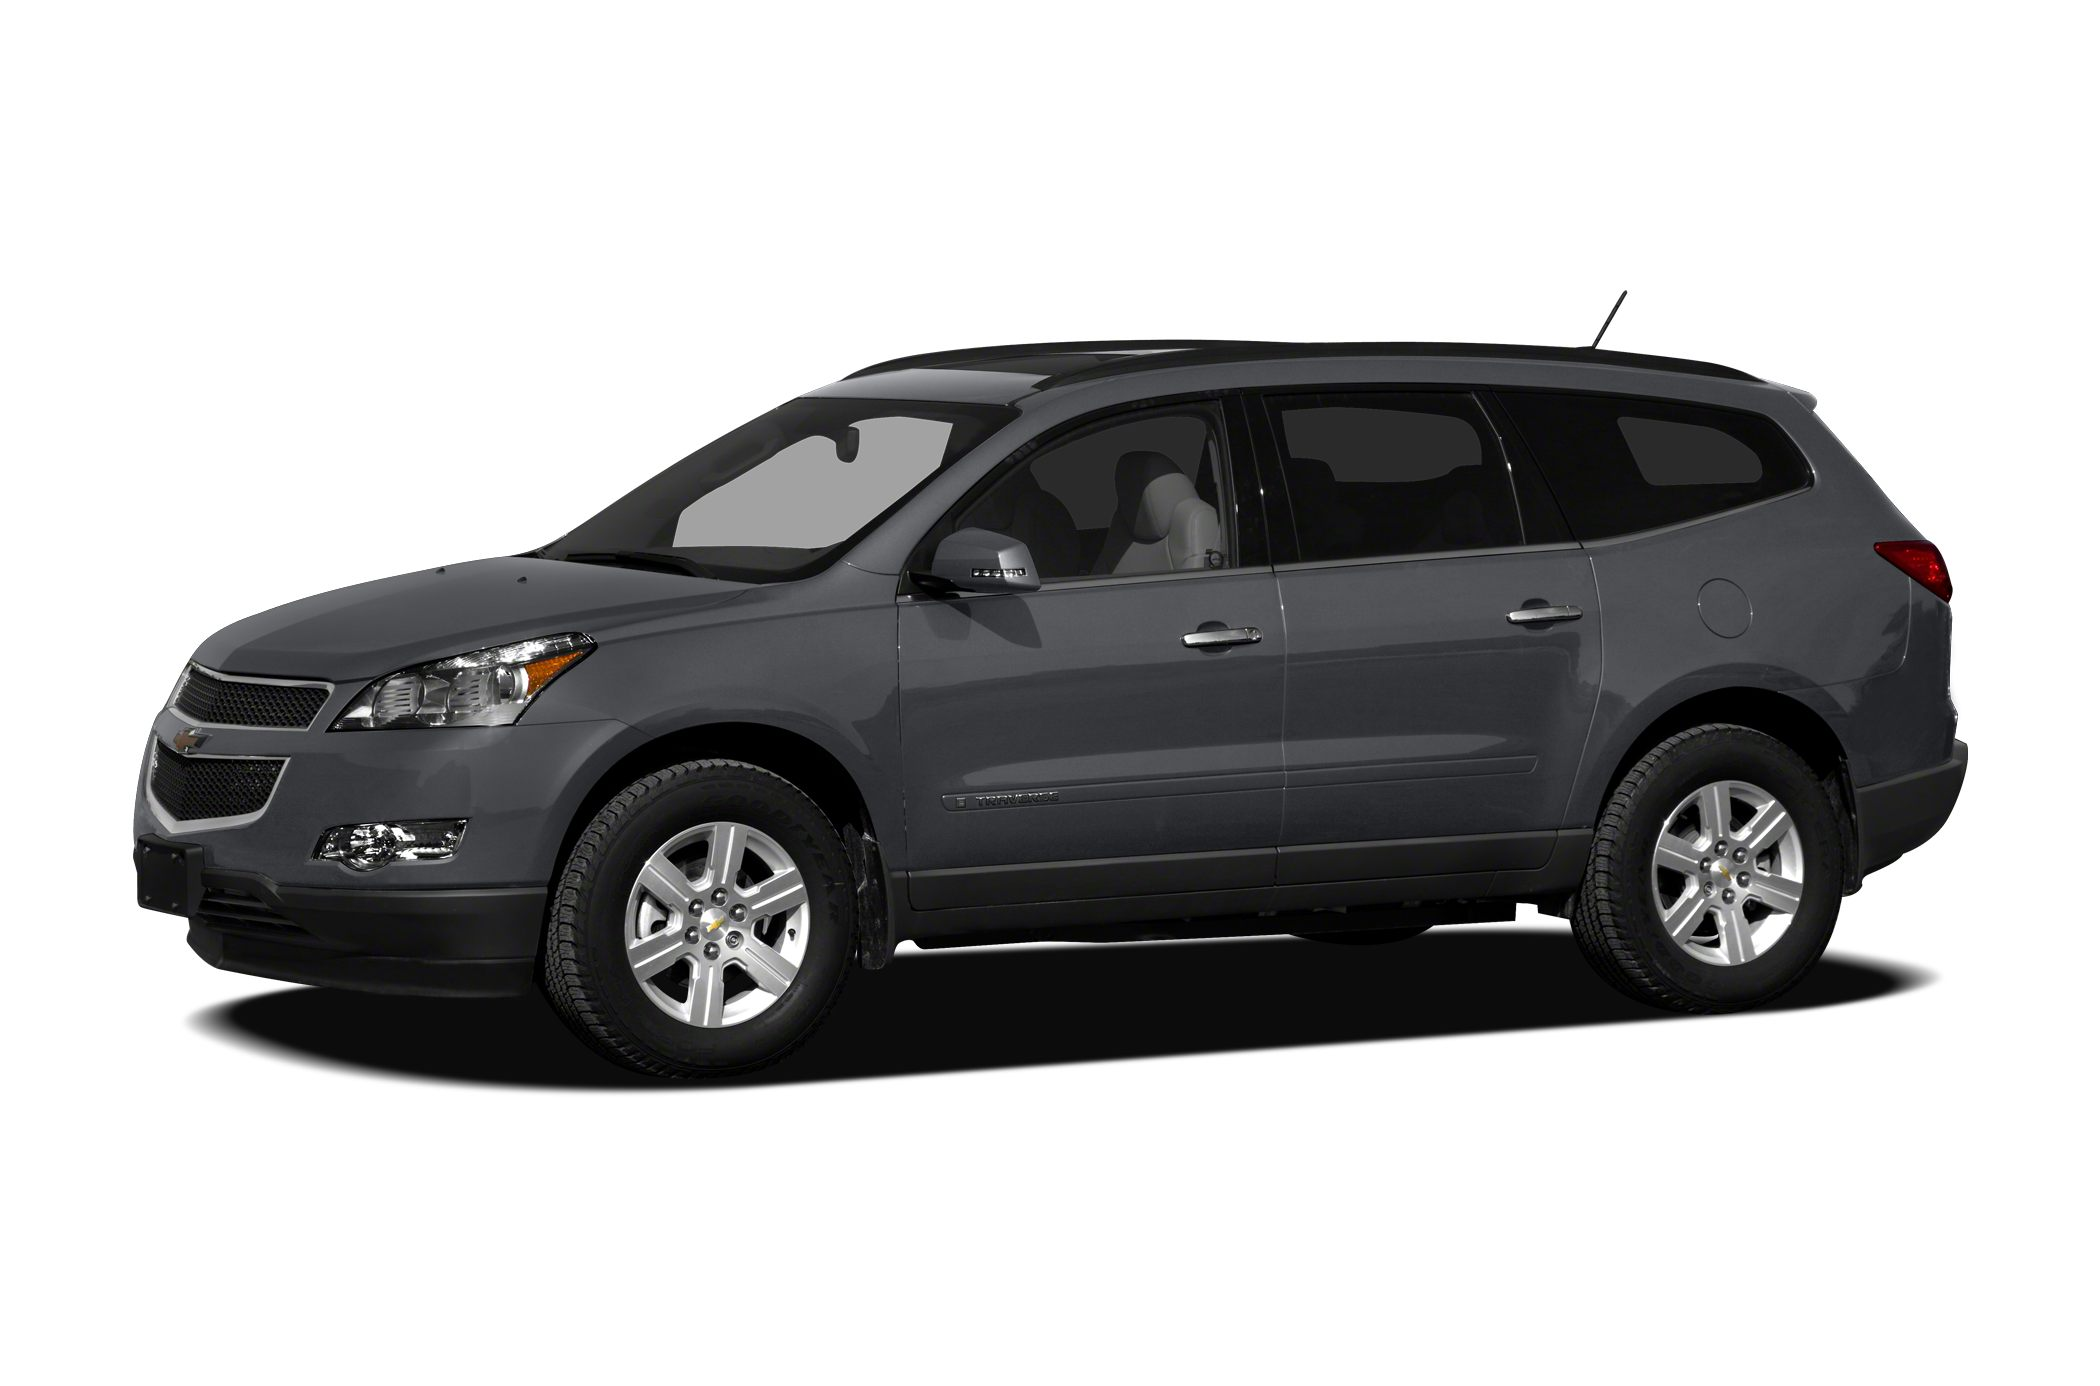 2012 Chevrolet Traverse LS SUV for sale in Lakewood for $19,999 with 37,456 miles